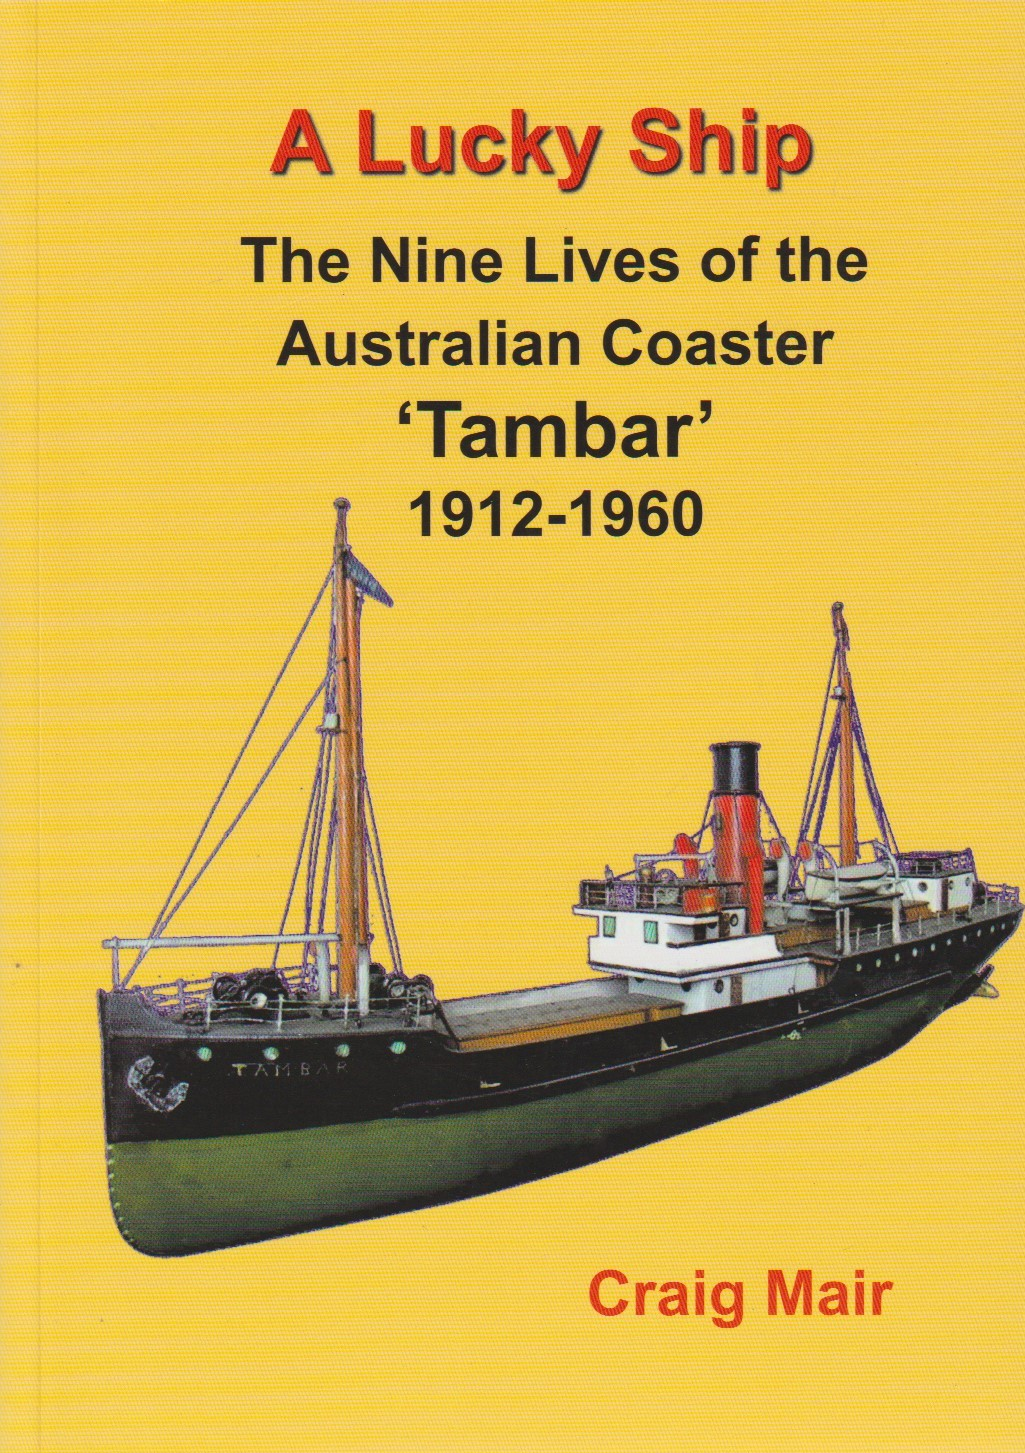 A Lucky Ship - The Nine Lives of the Australian Coaster 'Tambar' 1912-1960